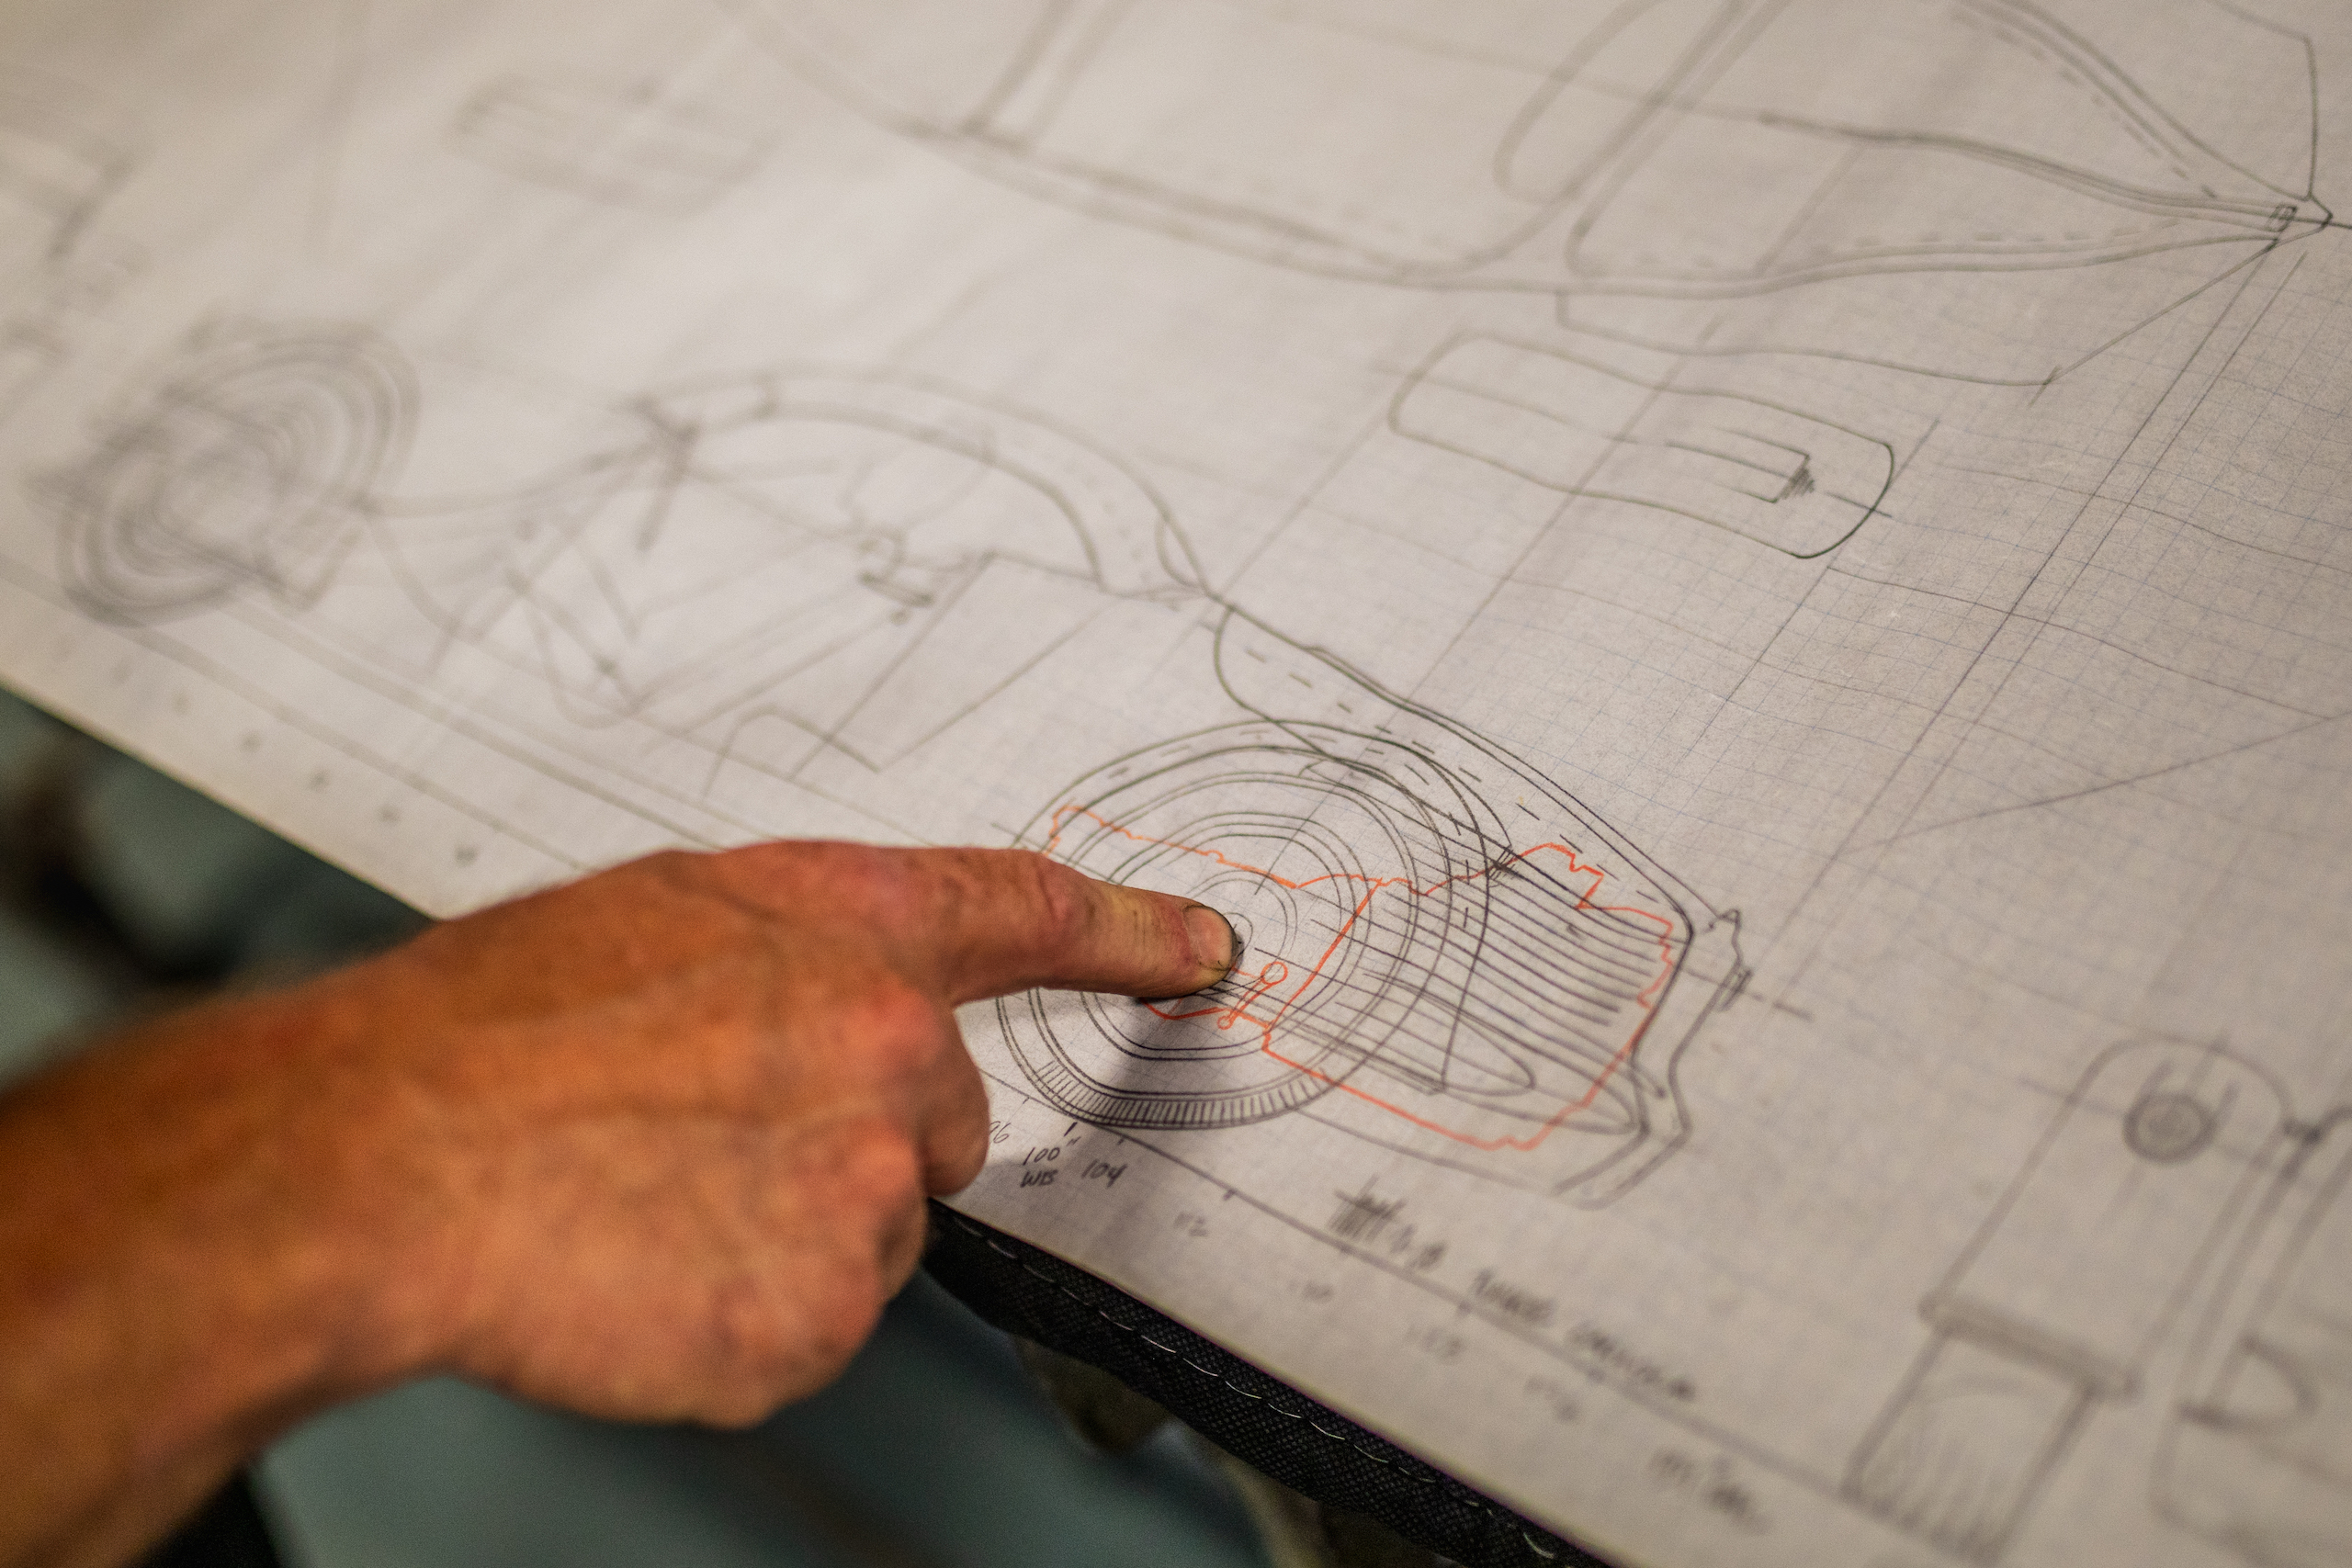 finger pointing to wheel on design drawing